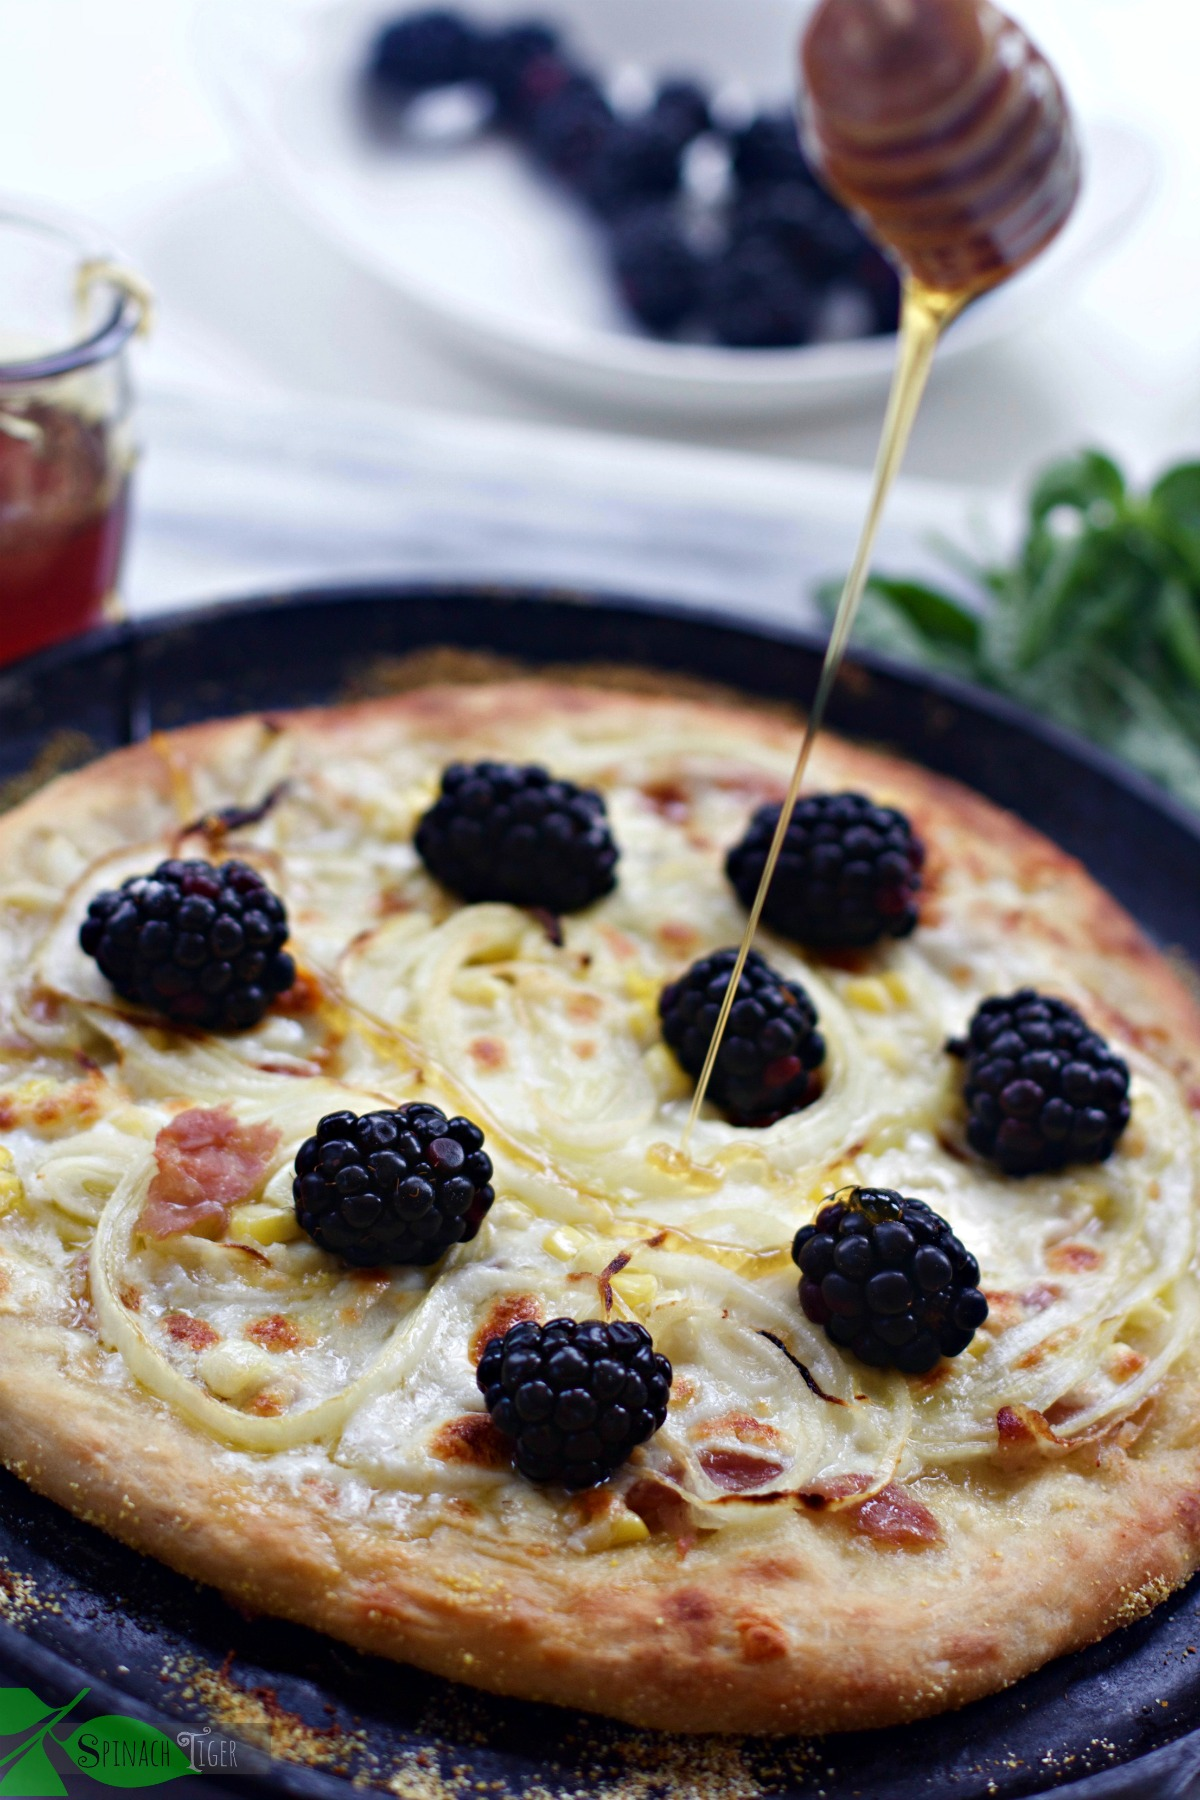 Vidalia Onion Pizza with Blackberries by Spinach TIger